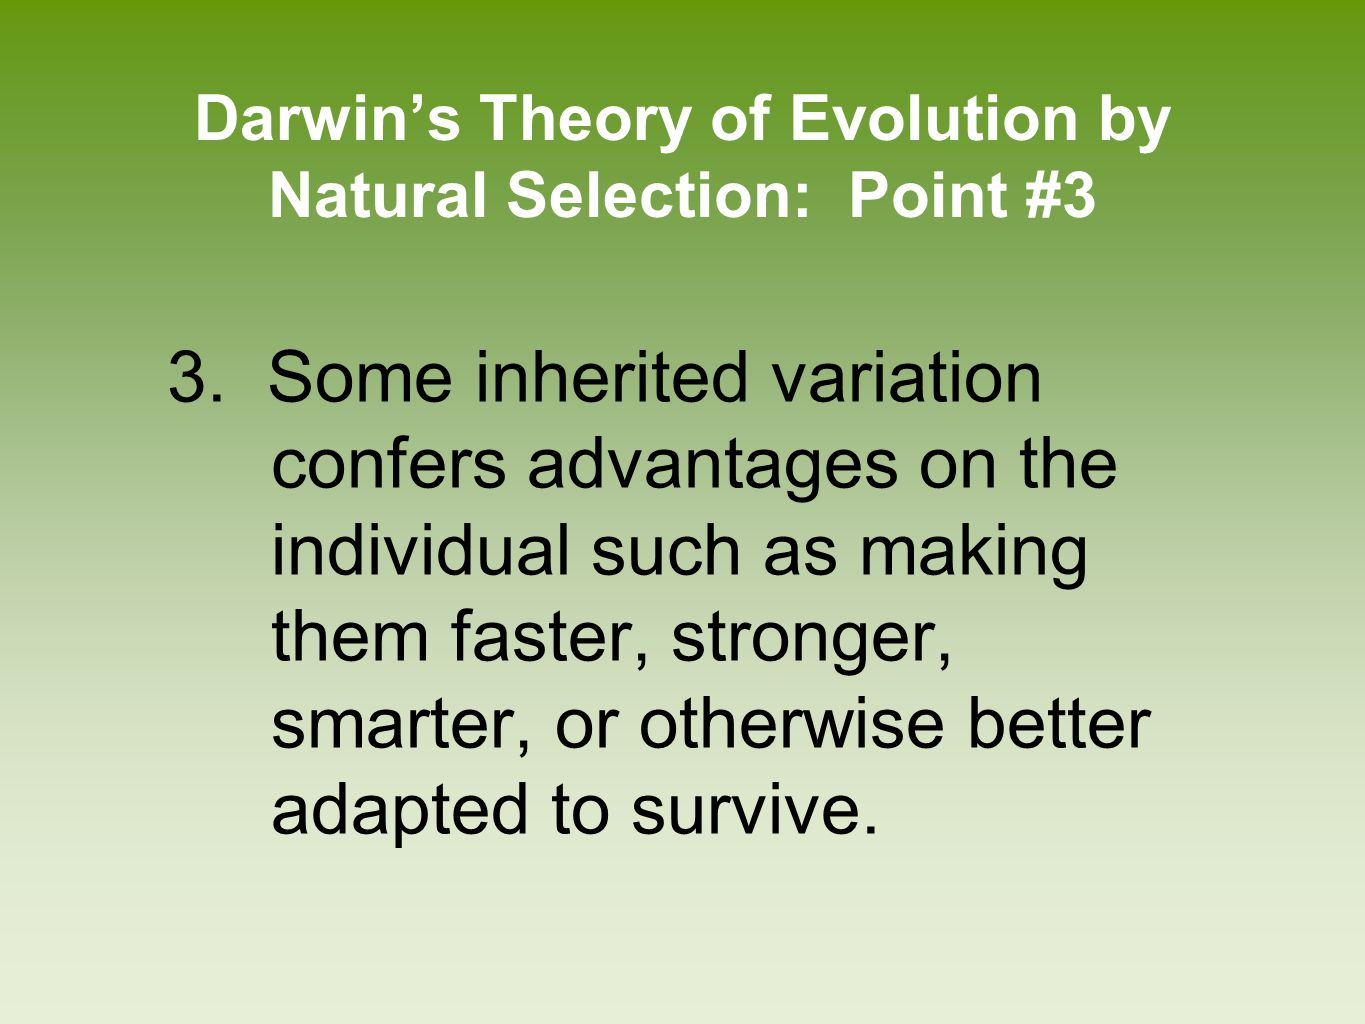 Darwin's Theory of Evolution by Natural Selection: Point #3